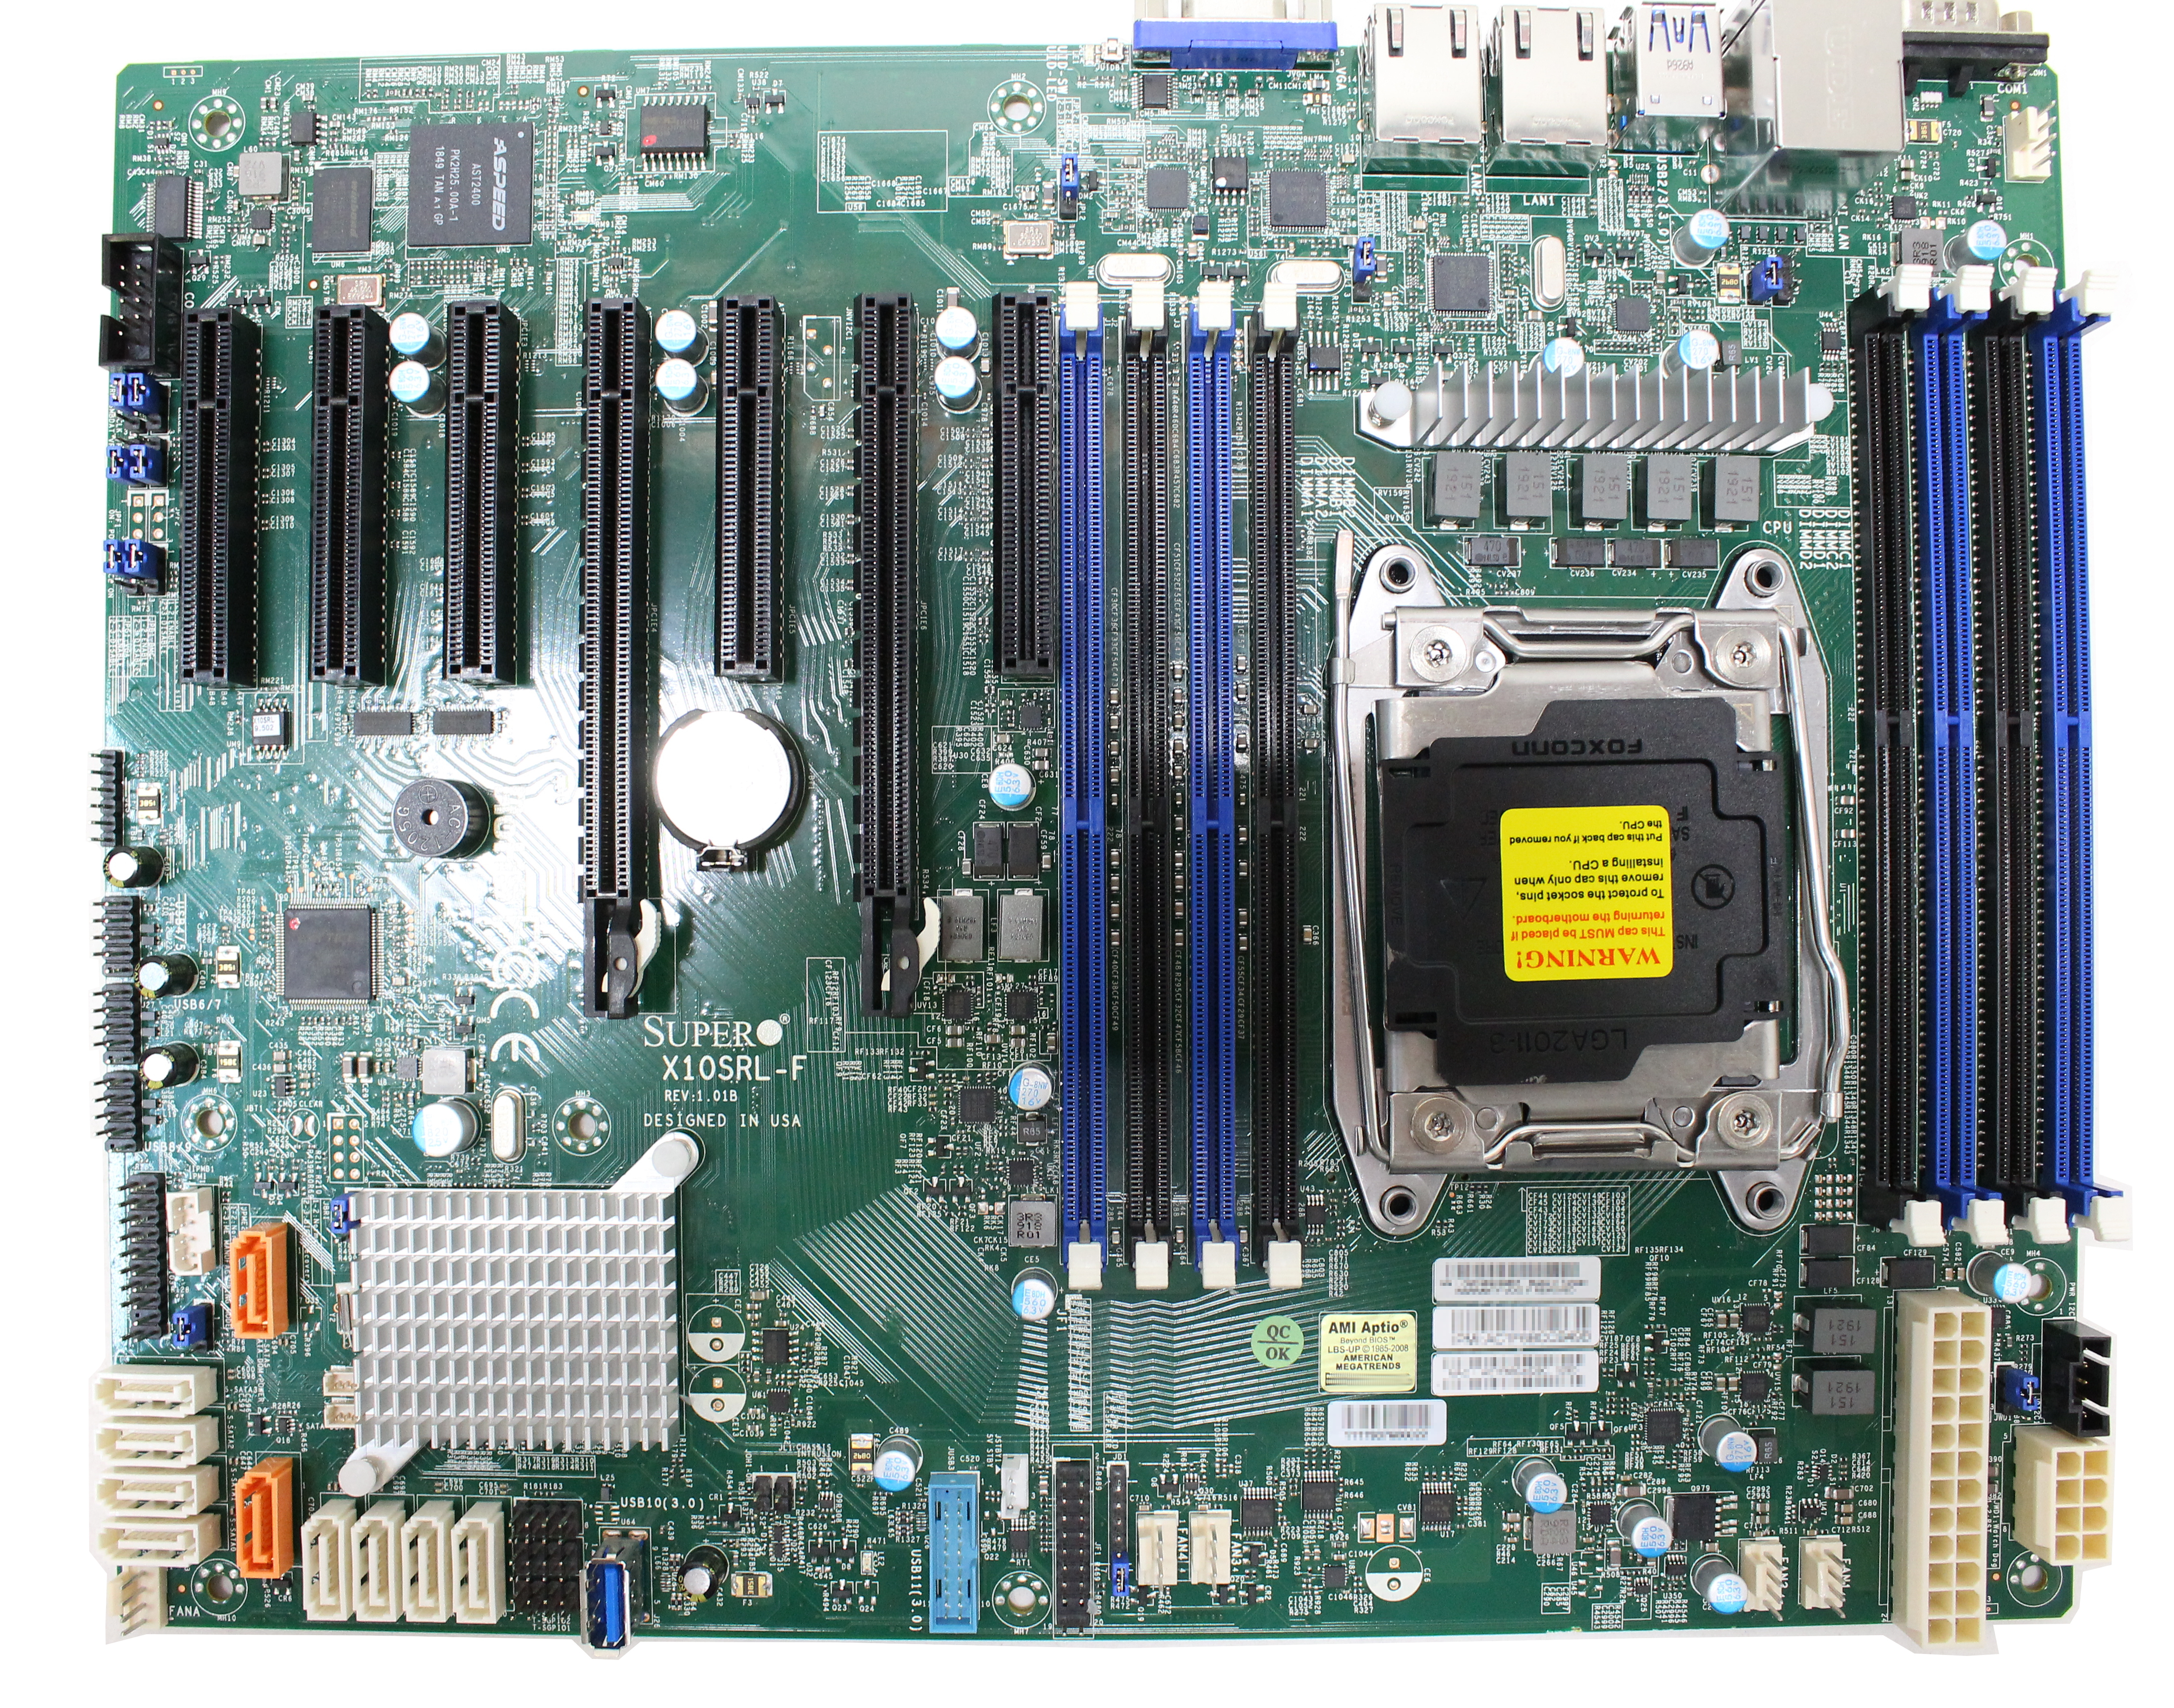 Supermicro motherboard ATX Socket LGA2011-v3 C612 USB 3.0 LAN graphics on board X10SRL-F